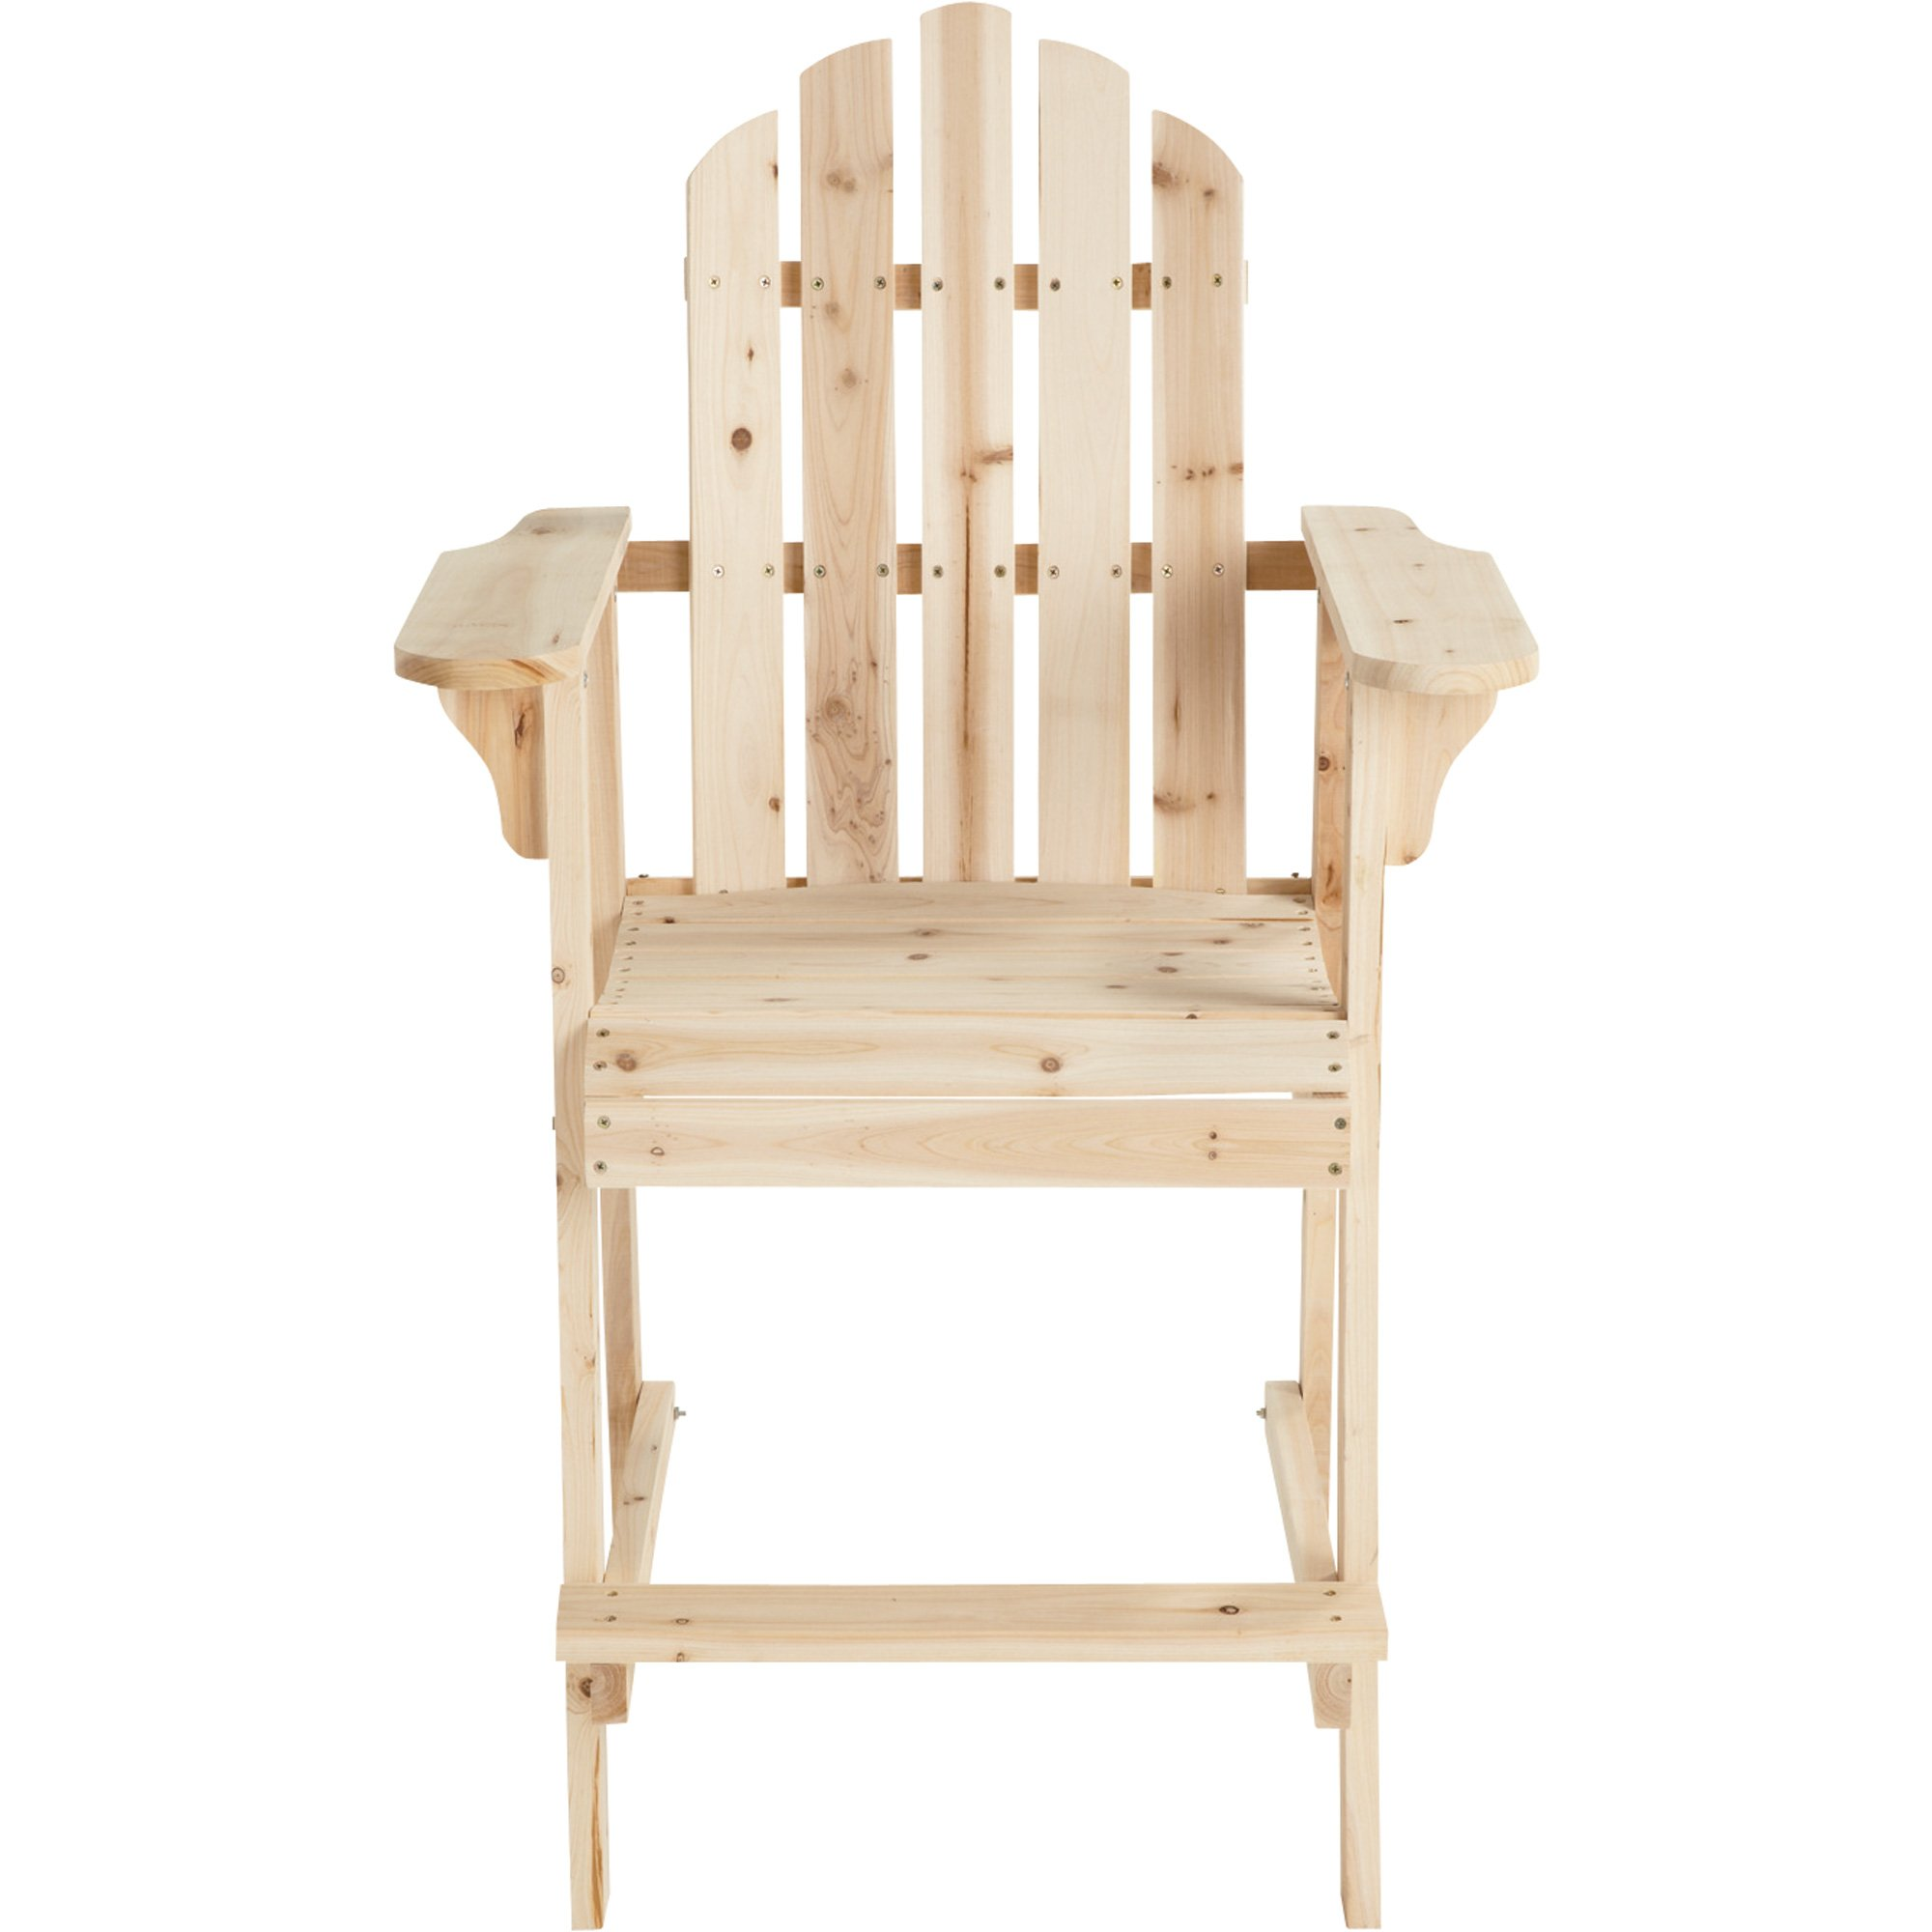 Stonegate Designs Tall Unfinished Fir Wood Adirondack Chair by Stonegate Designs